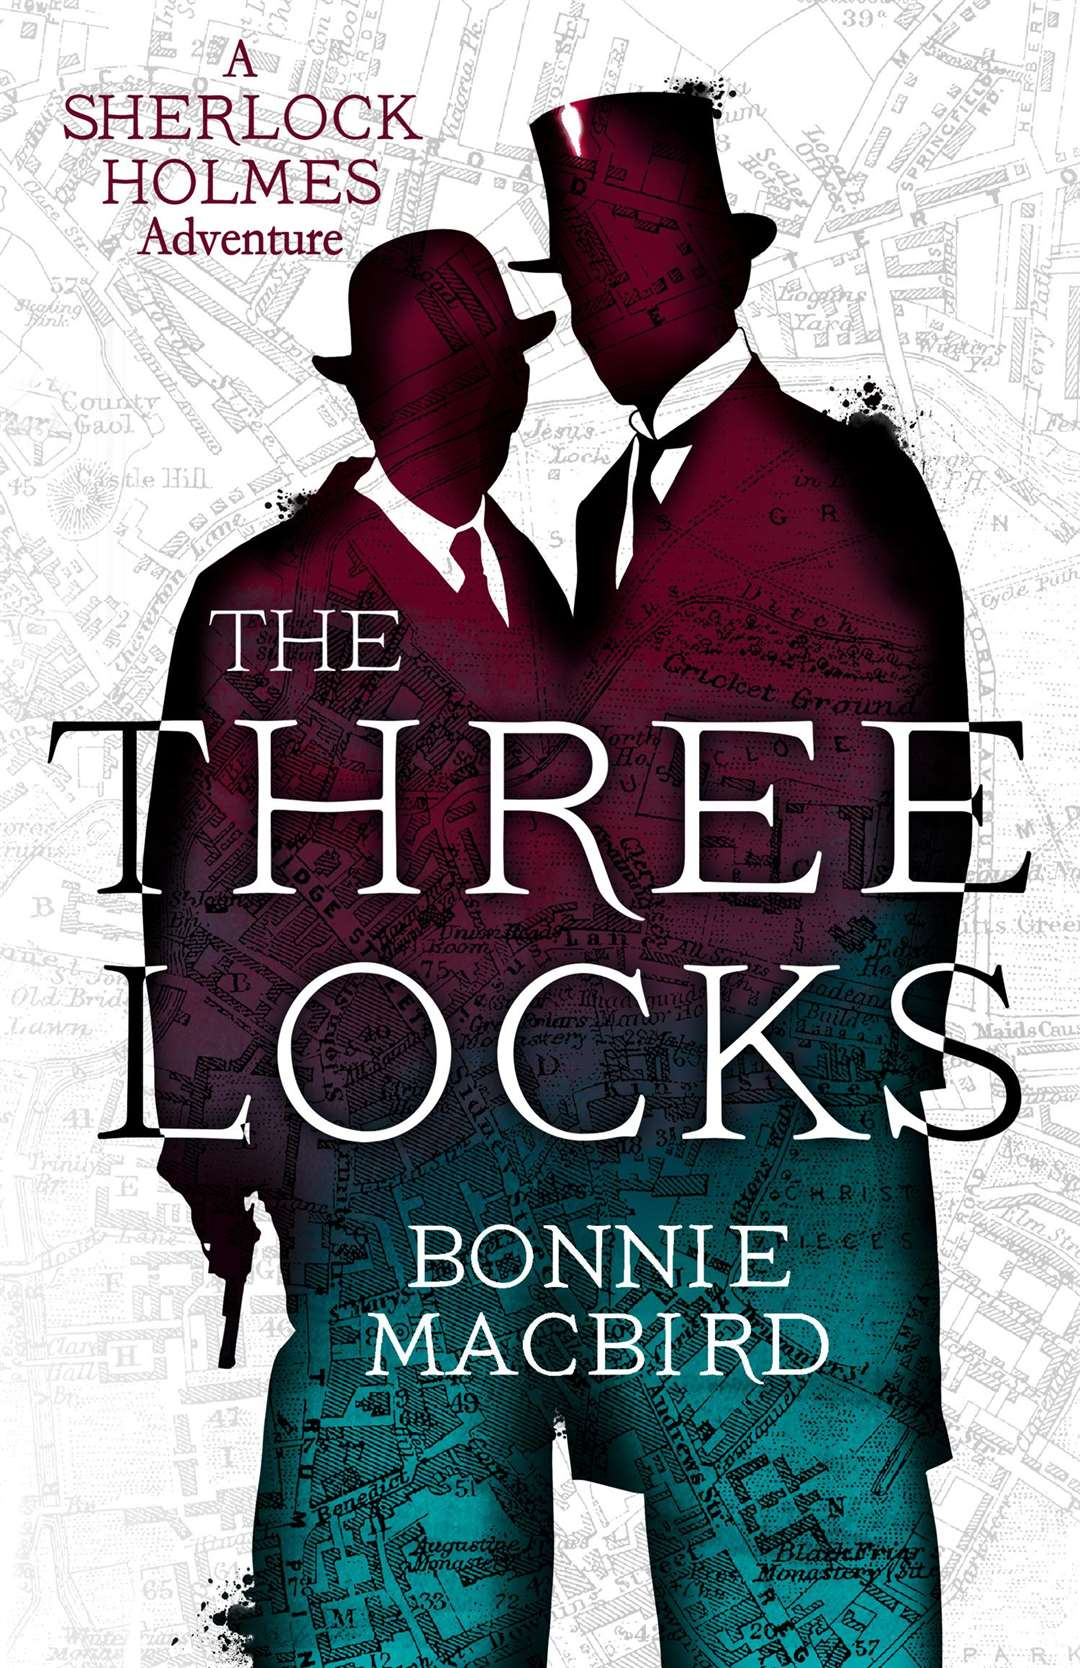 Bonnie MacBird's new book, The Three Locks